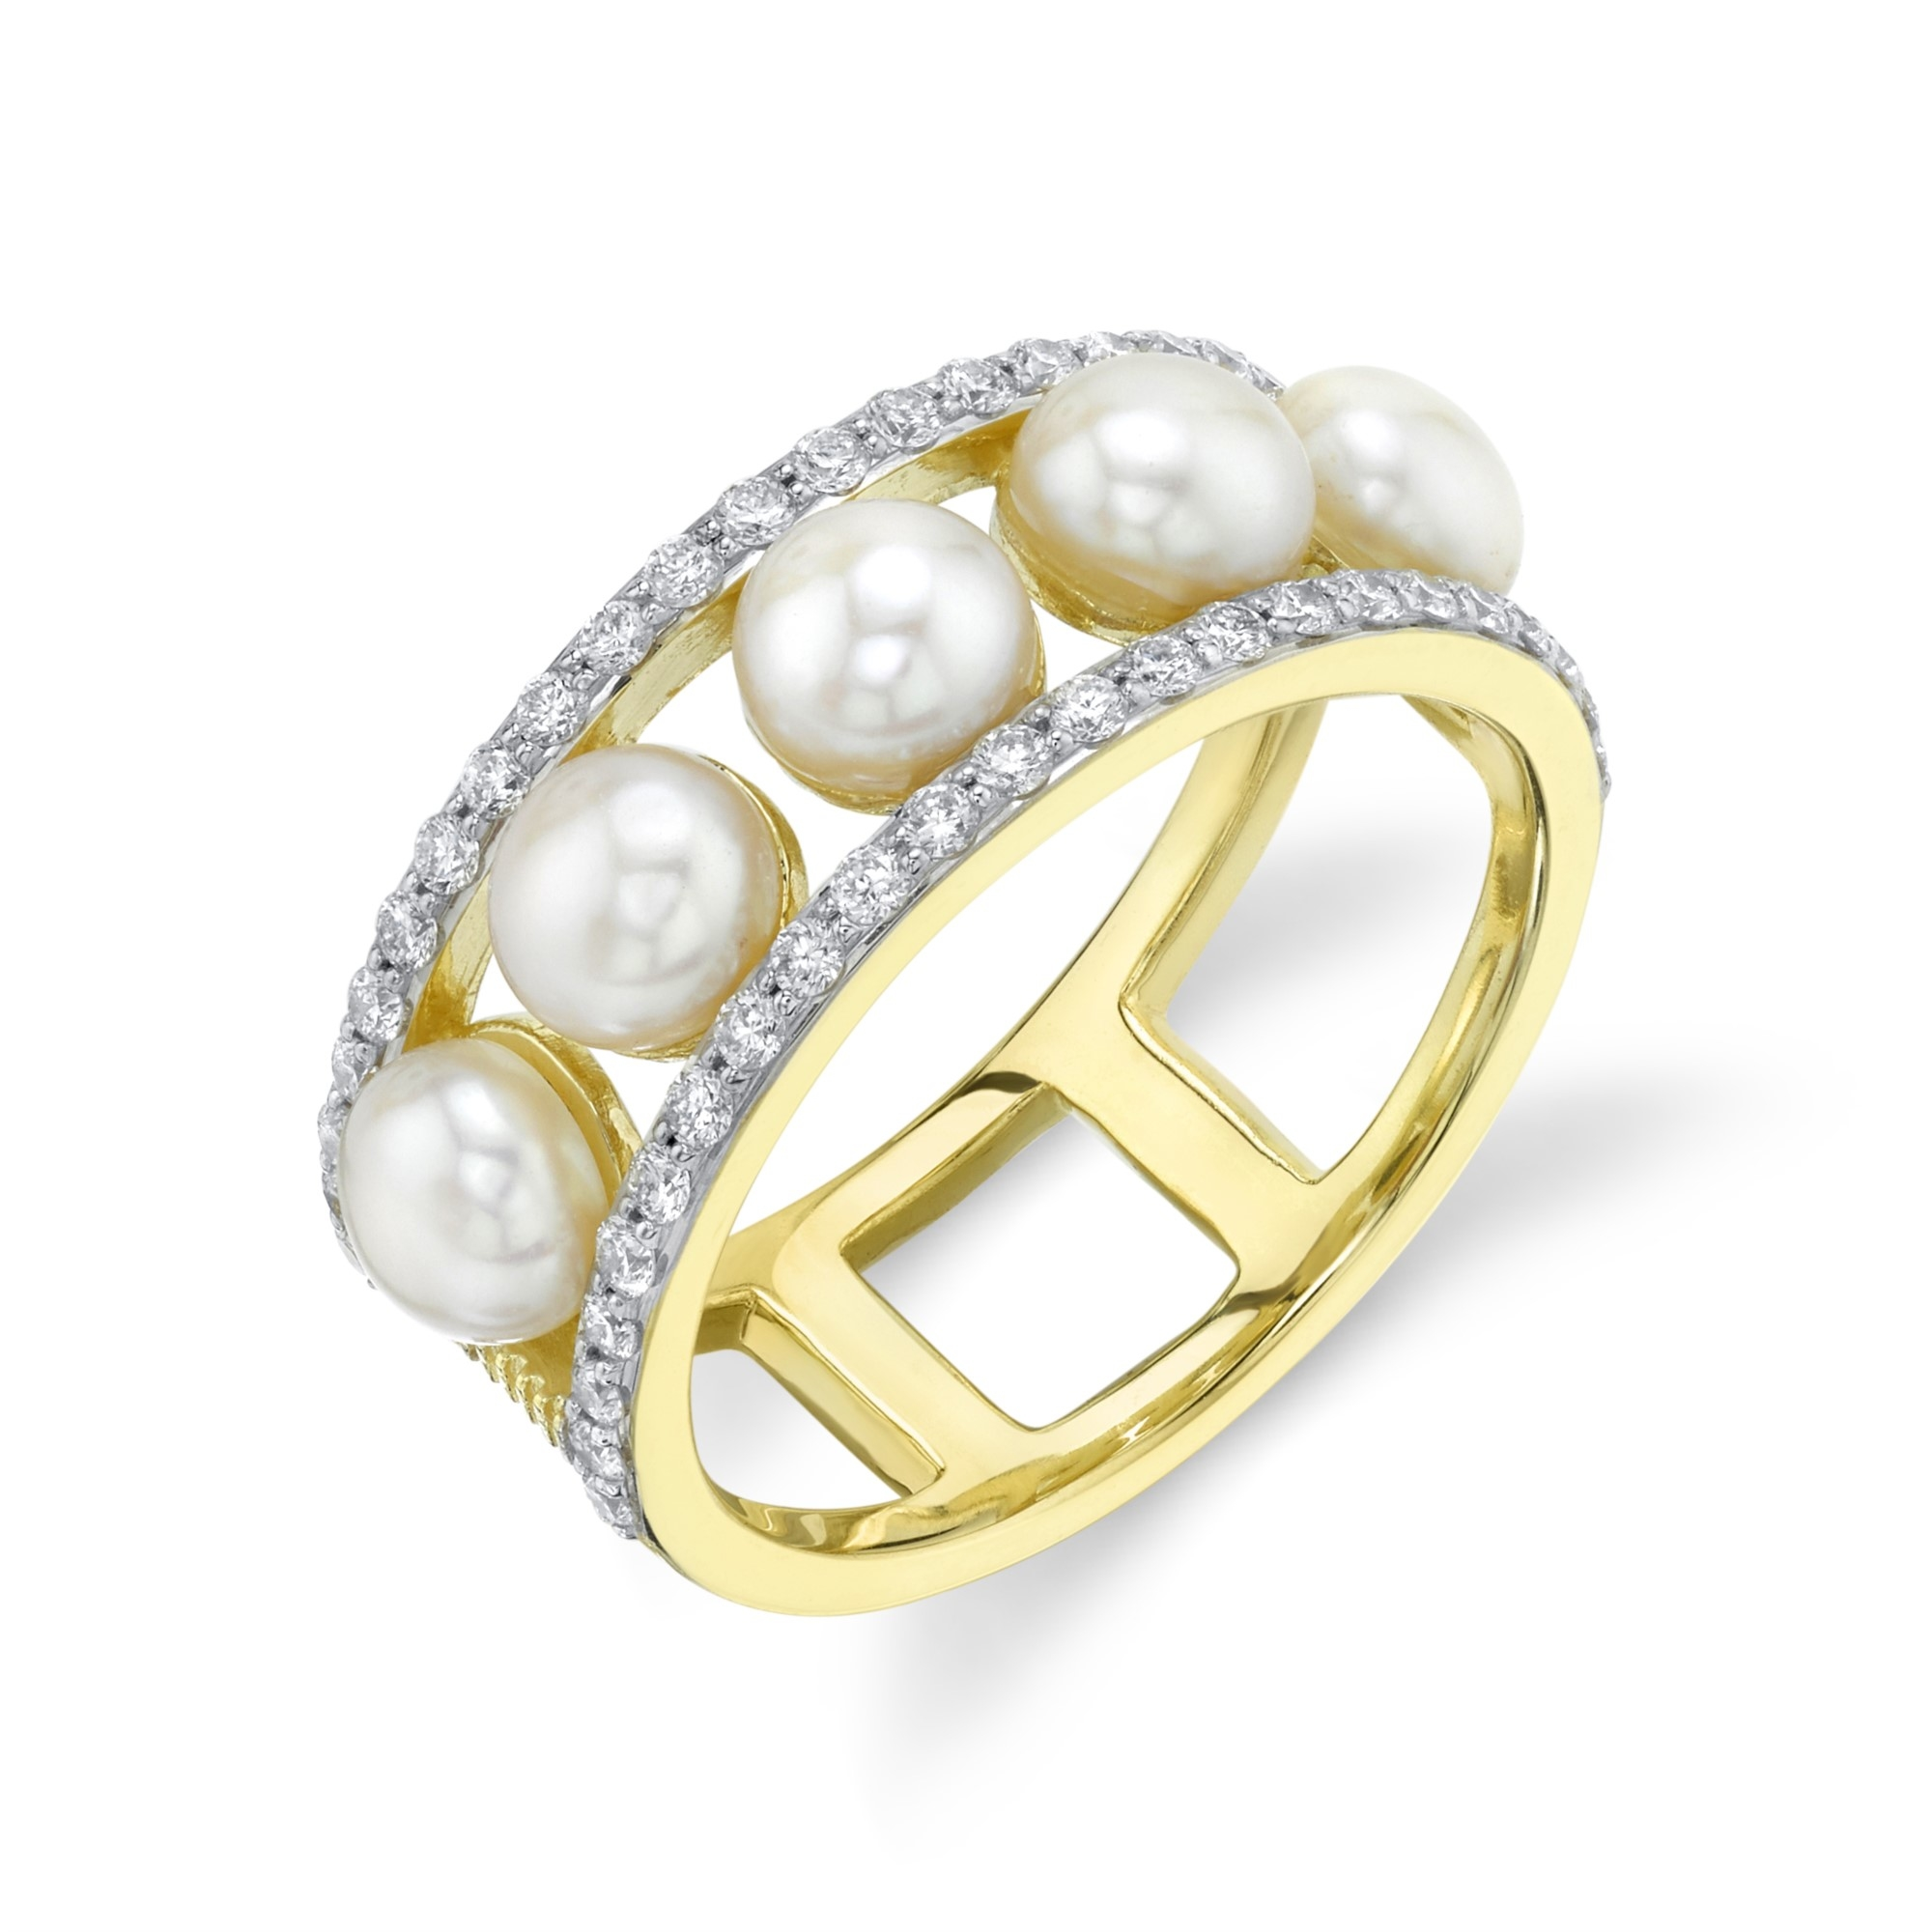 Sloane Street 18K Yellow Gold .46cts  Diamonds Gold Ring with Stones R038F-WP-WDCB-Y